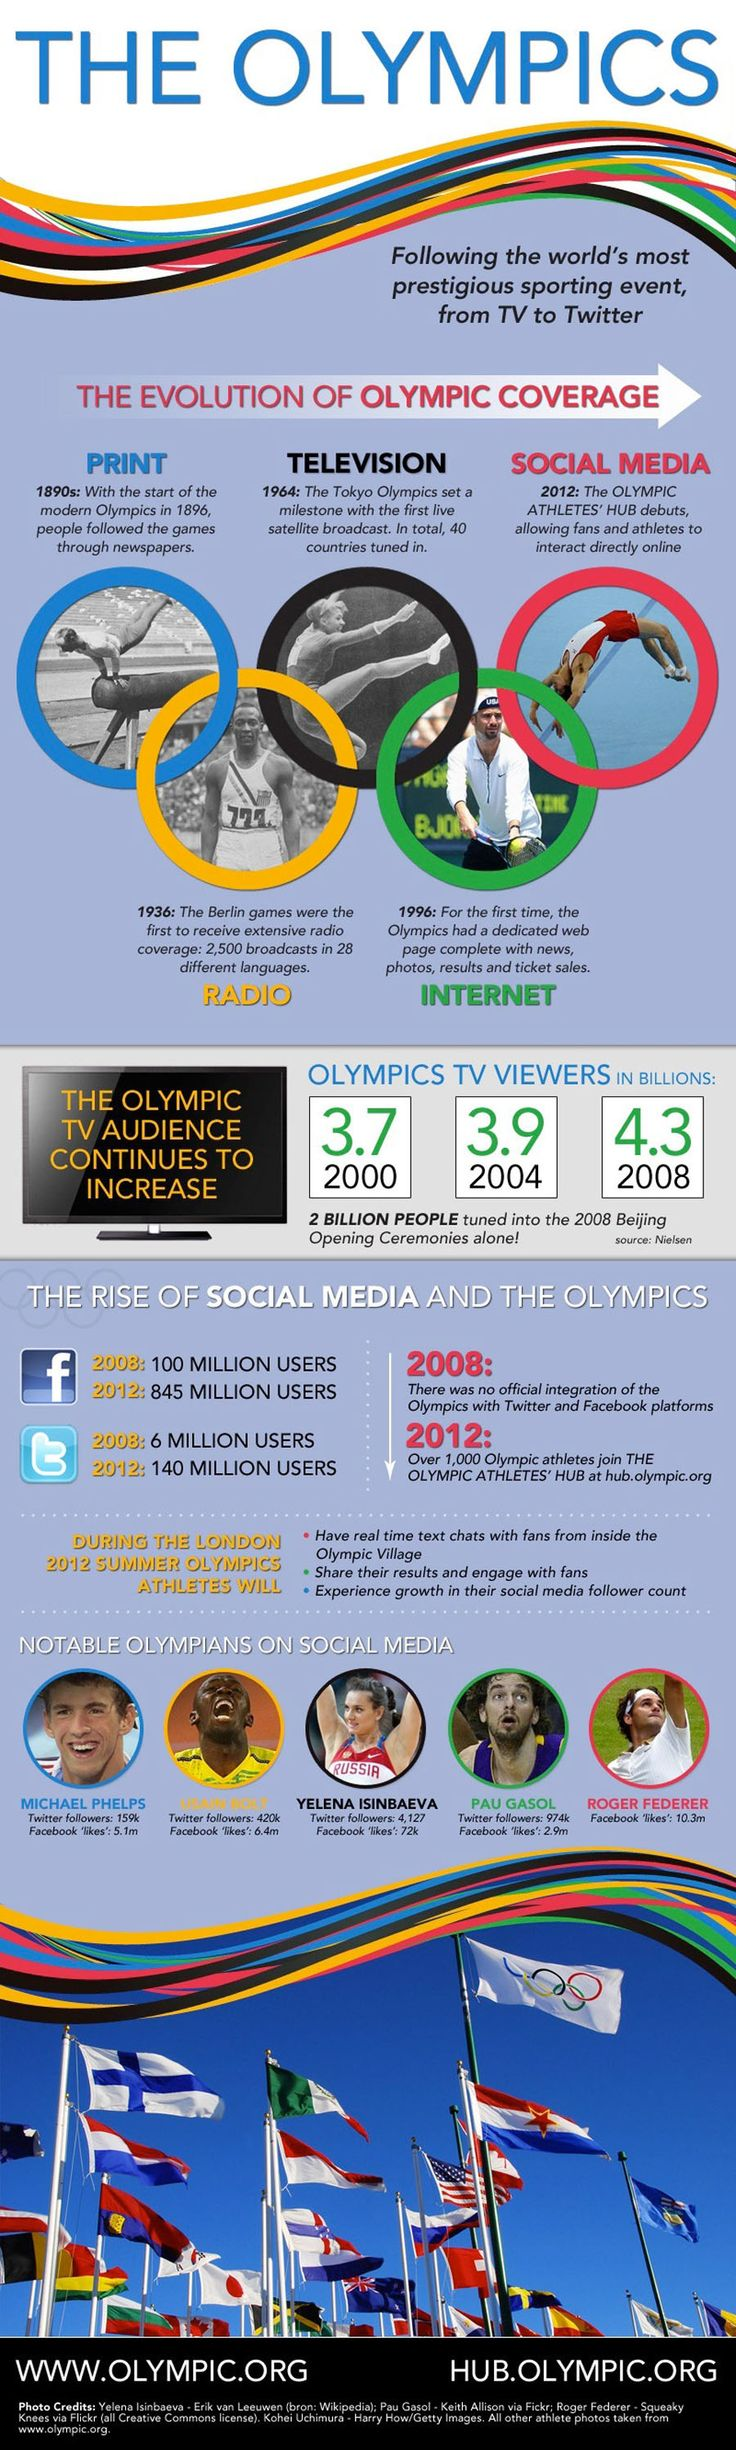 """Facebook, Twitter, and London 2012 - The first Social Olympics. """"Twitter is going to be the de facto news delivery service for the 2012 Games."""" - Paul Kelso of The Telegraph (via wallblog.co.uk)"""